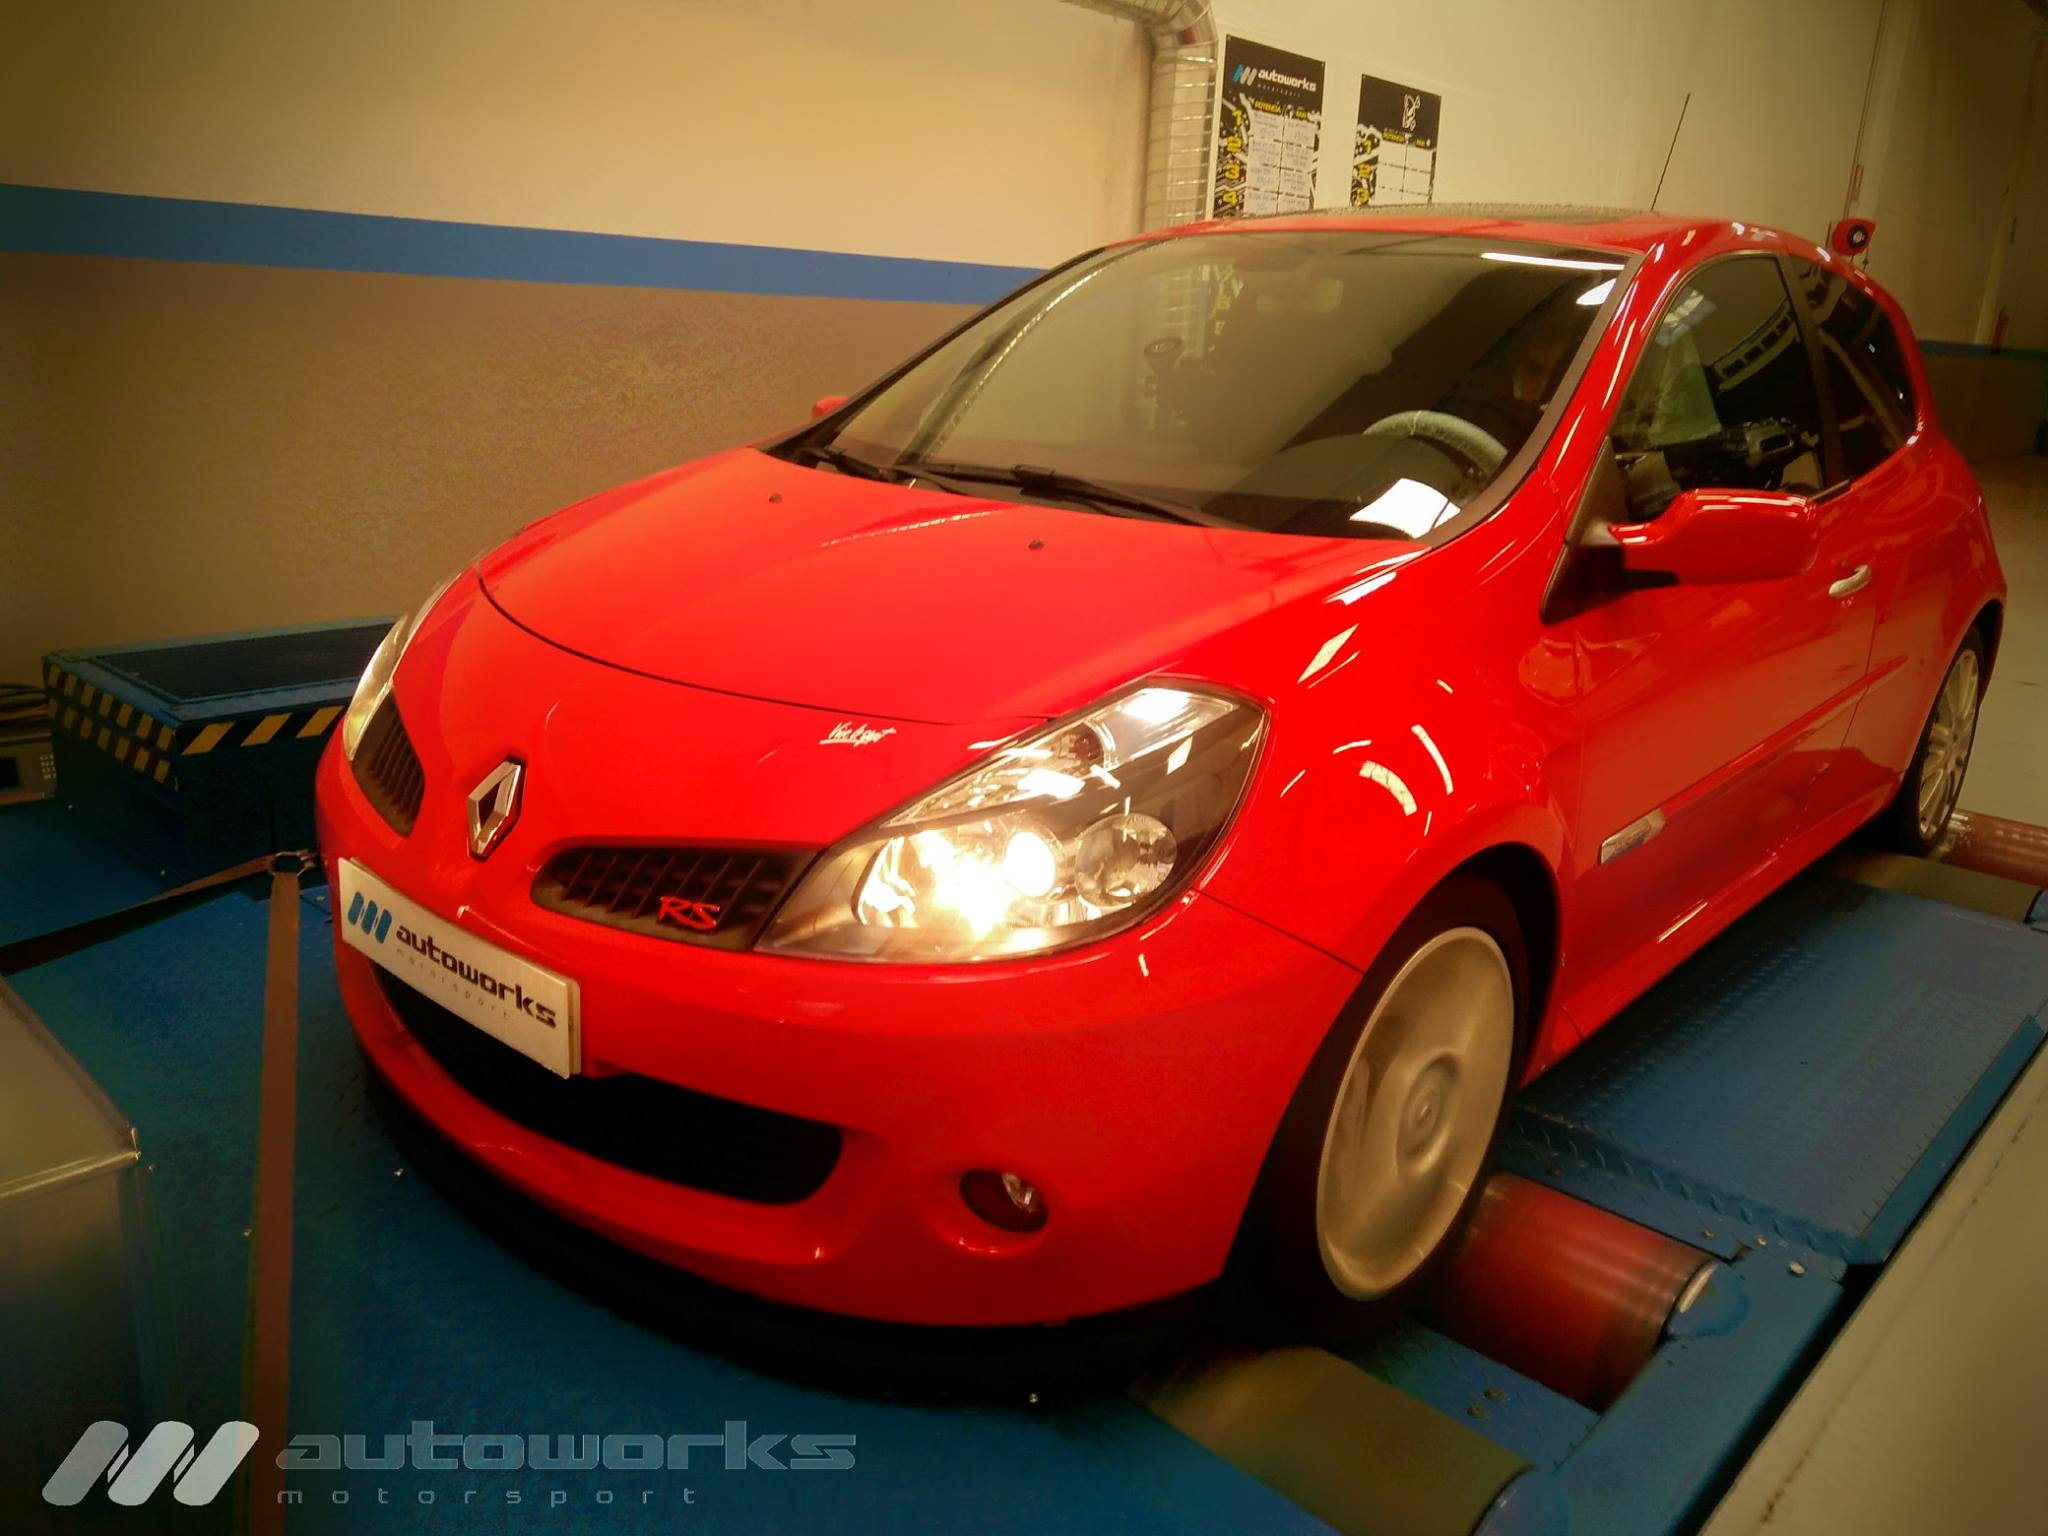 Renault Clio RS 197